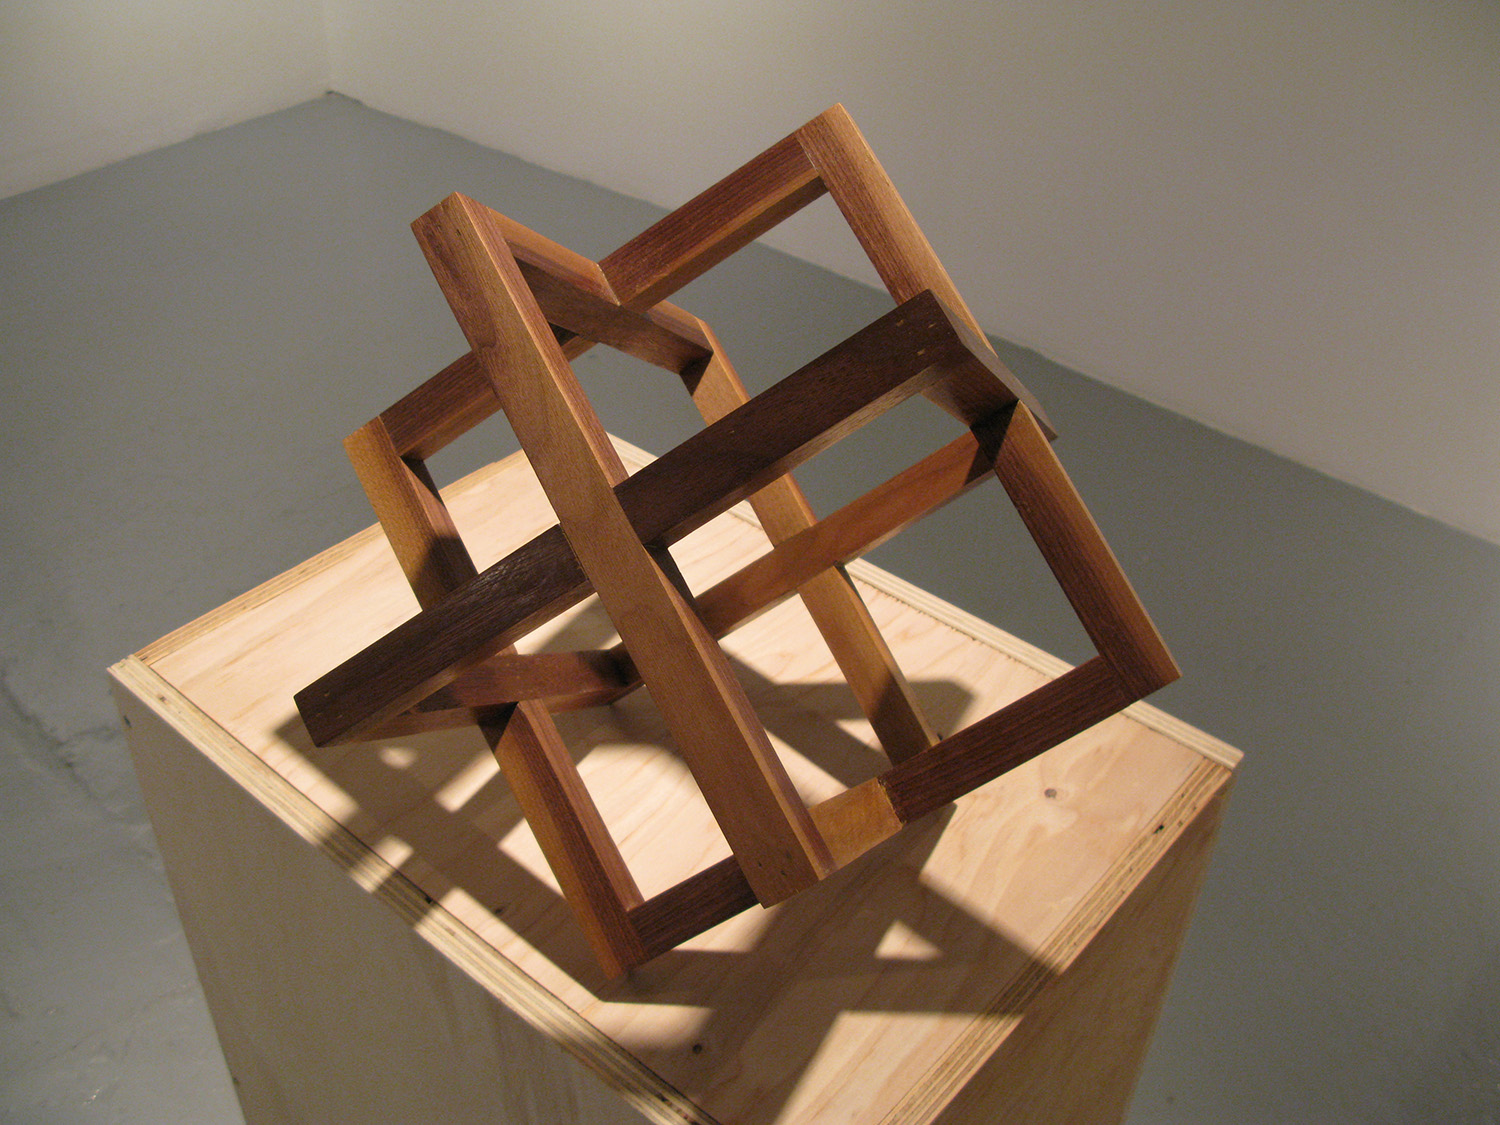 Strip Cube (Walnut), 2009, walnut, 12 x 12 x 12 inches, unique edition of 10